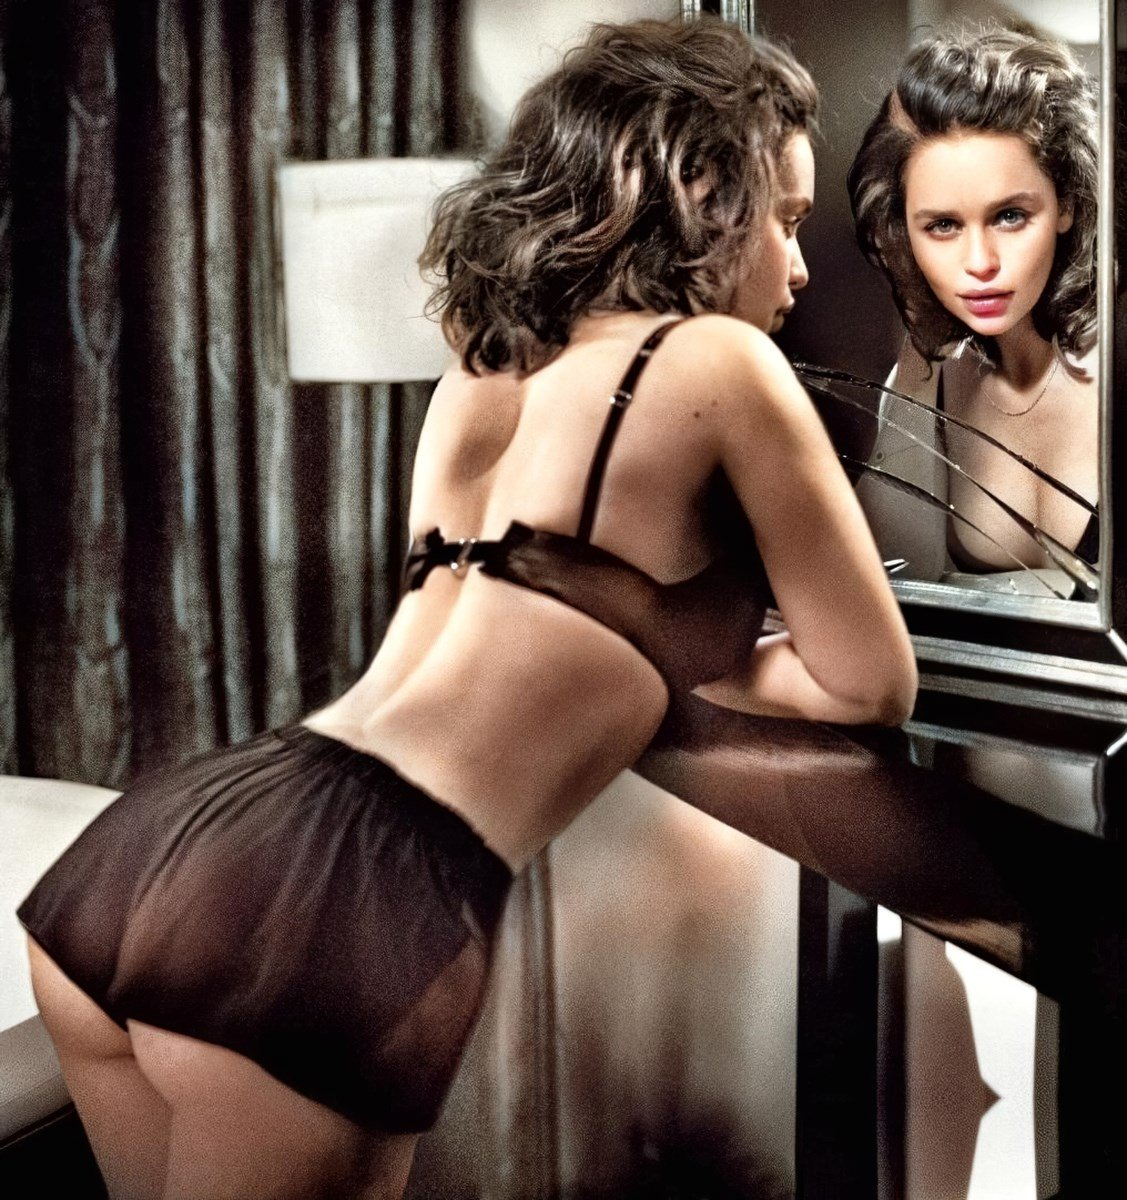 Emilia Clarke Covered Nudes Colorized